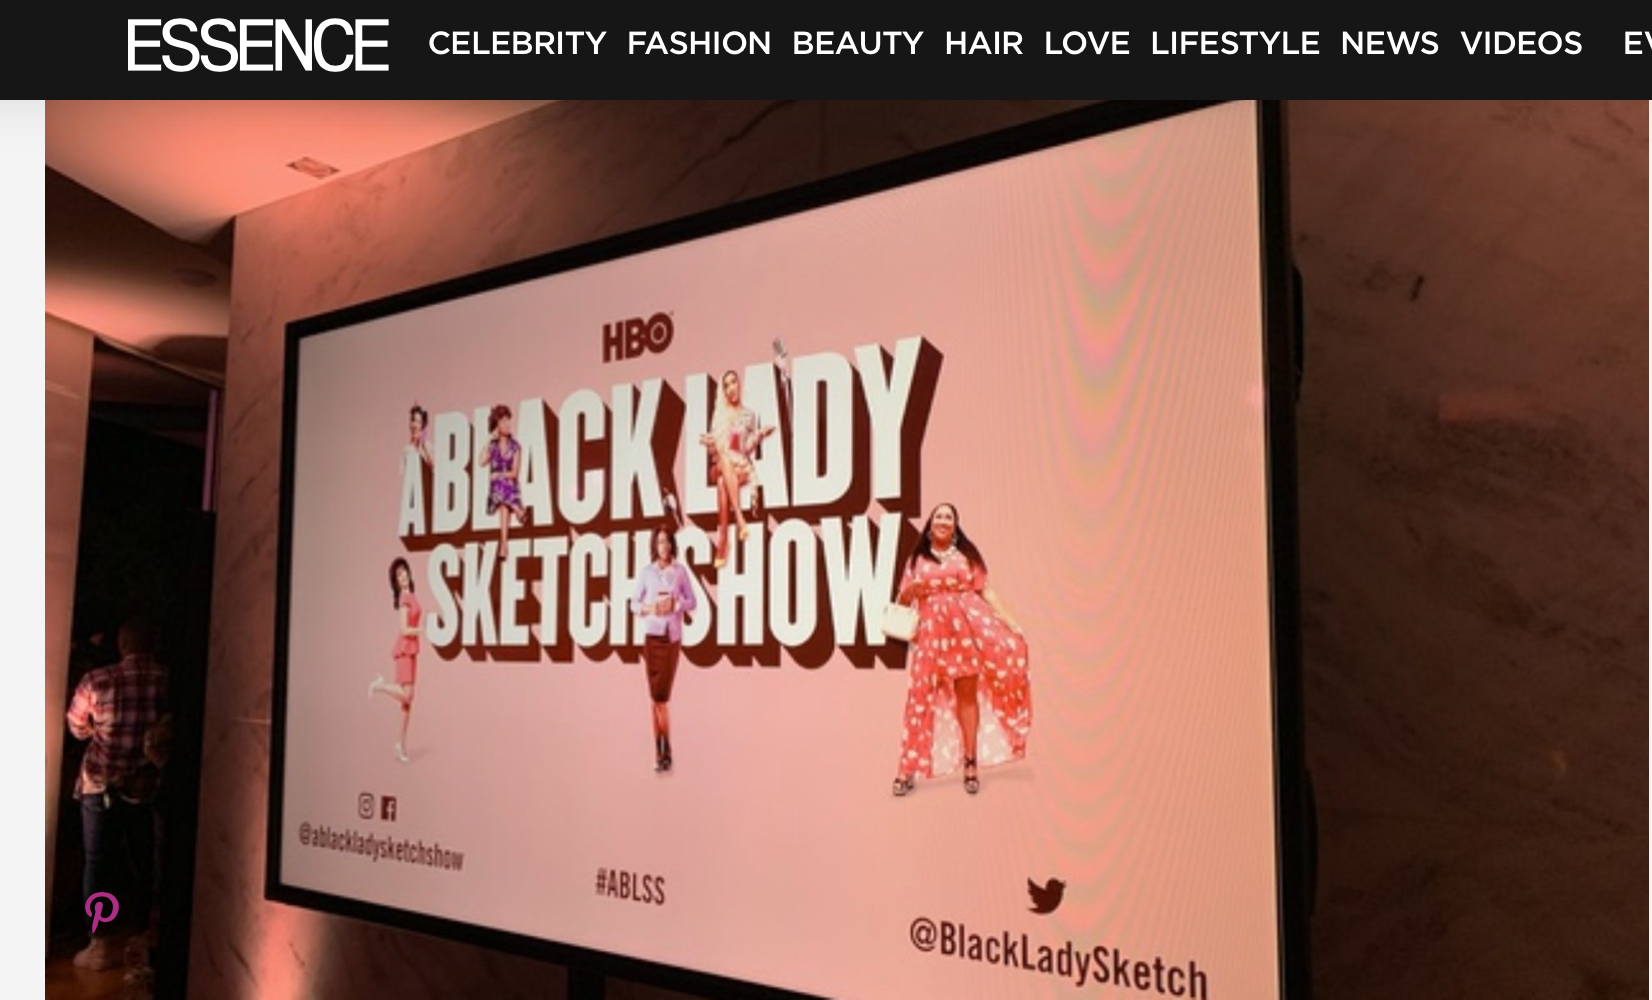 Essence | Instagram Celebrates 'A Black Lady Sketch Show'  - Since the announcement of the show, many have been excited to see some many creative Black women all share one screen. Each episode not only centers Black women's thoughts on what's happening in pop culture but makes history for being the first series to ever showcase an all-Black woman-led cast.